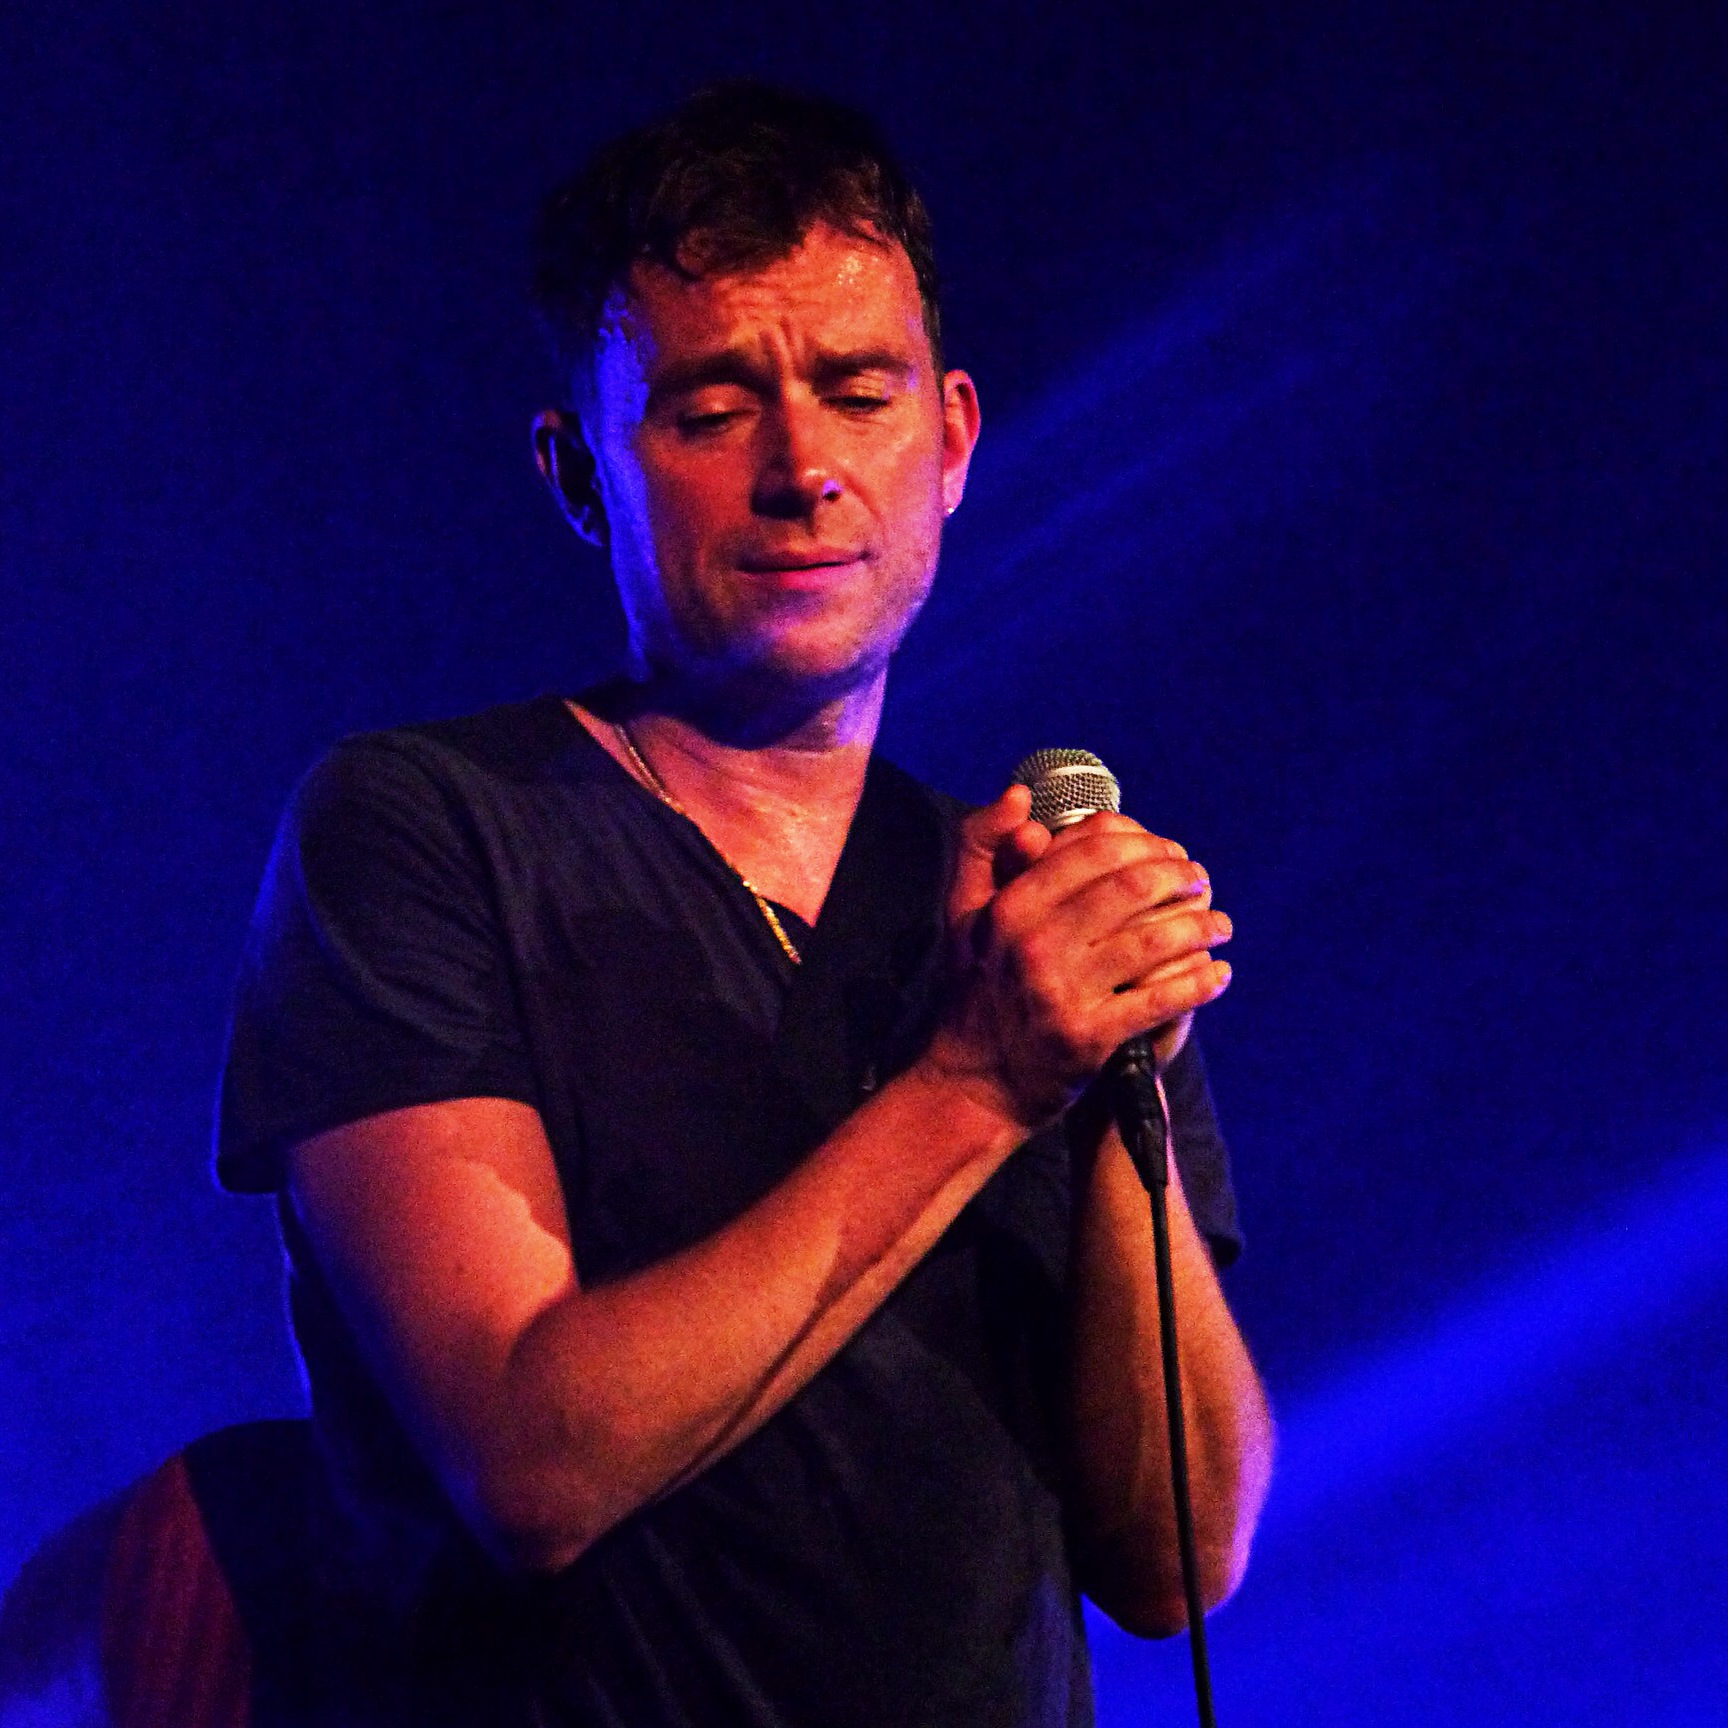 Damon Albarn concert on stage singer blur gorillaz  live show Casino de Paris Festival Les Inrocks Philips Everyday robots photo by United States of Paris Blog